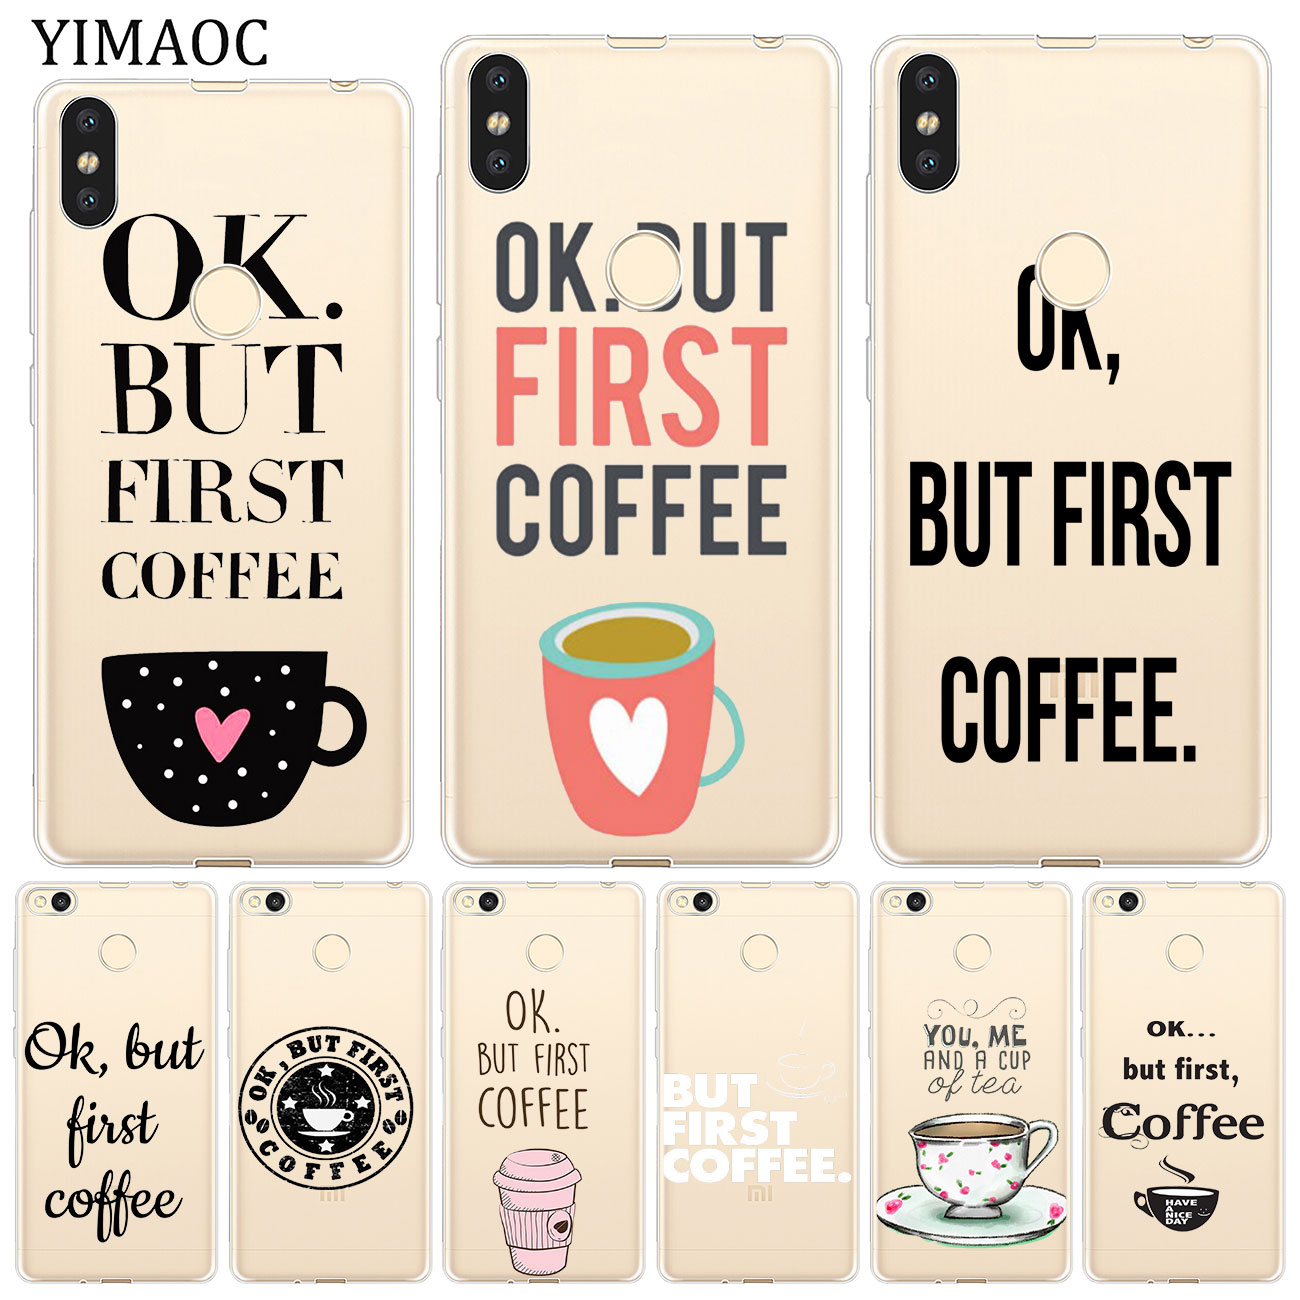 YIMAOC Ok But First Coffee Soft Phone Case for Xiaomi Mi 9 9T CC9 CC9E A3 Pro 8 SE A2 Lite A1 MiX 2S